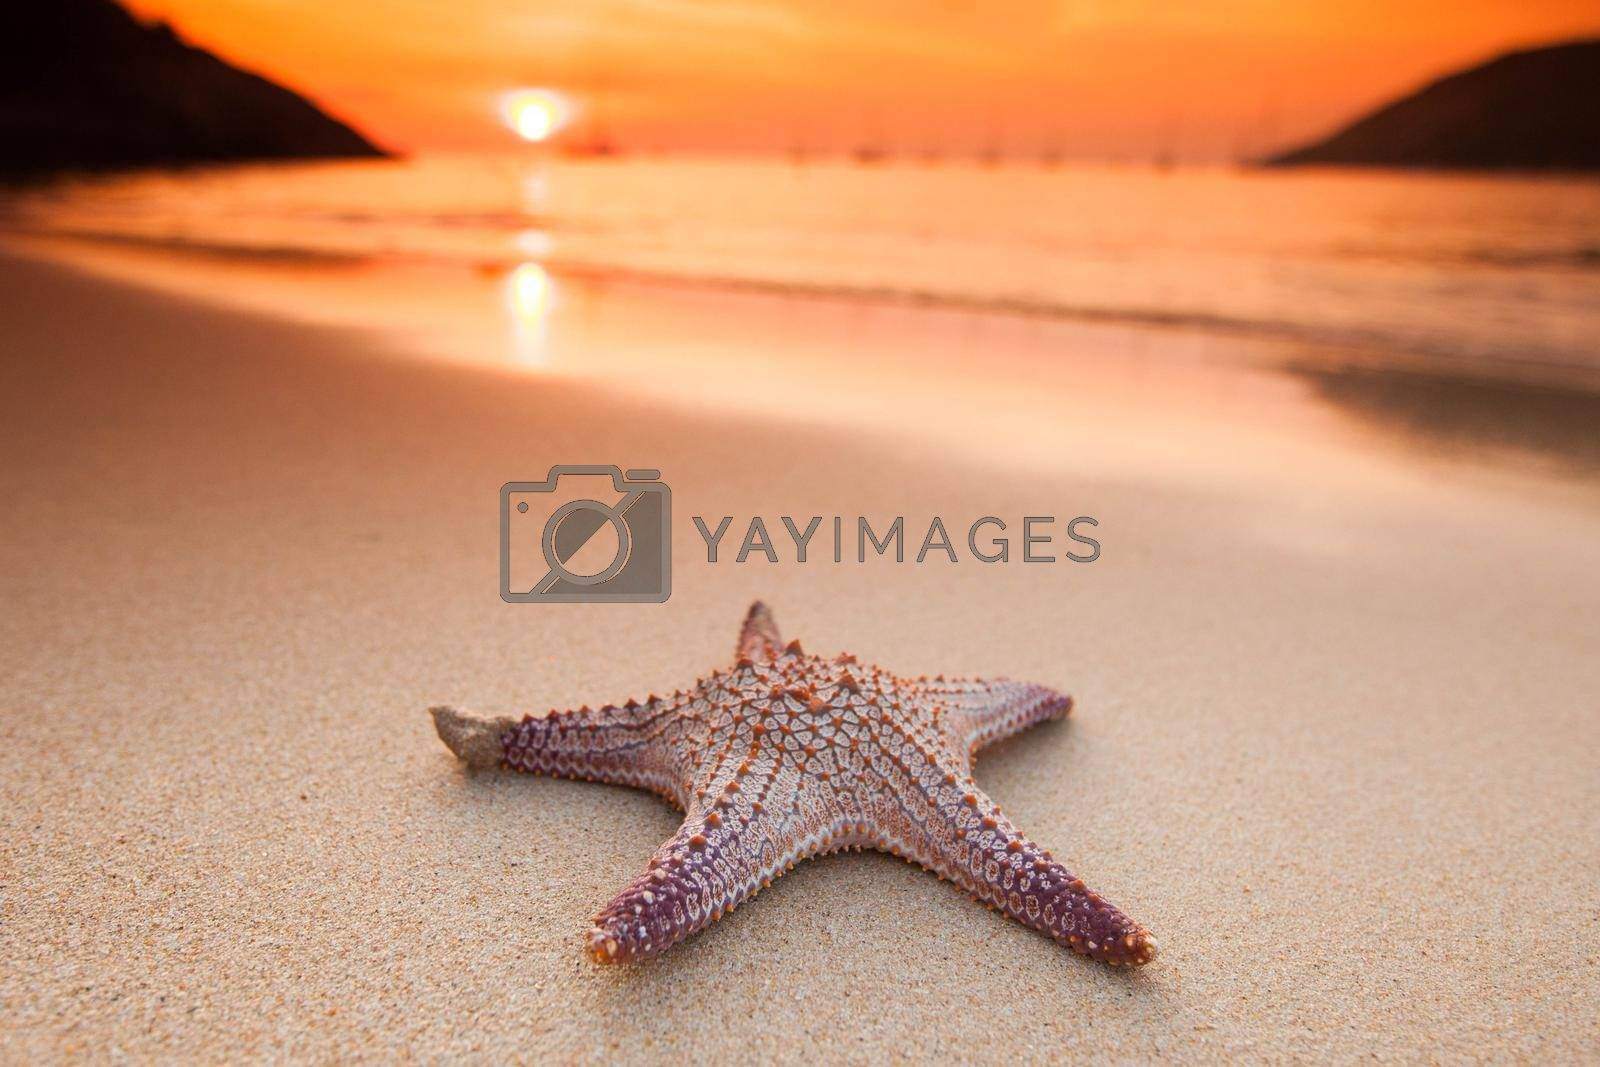 Royalty free image of Starfish on beach at sunset by Yellowj